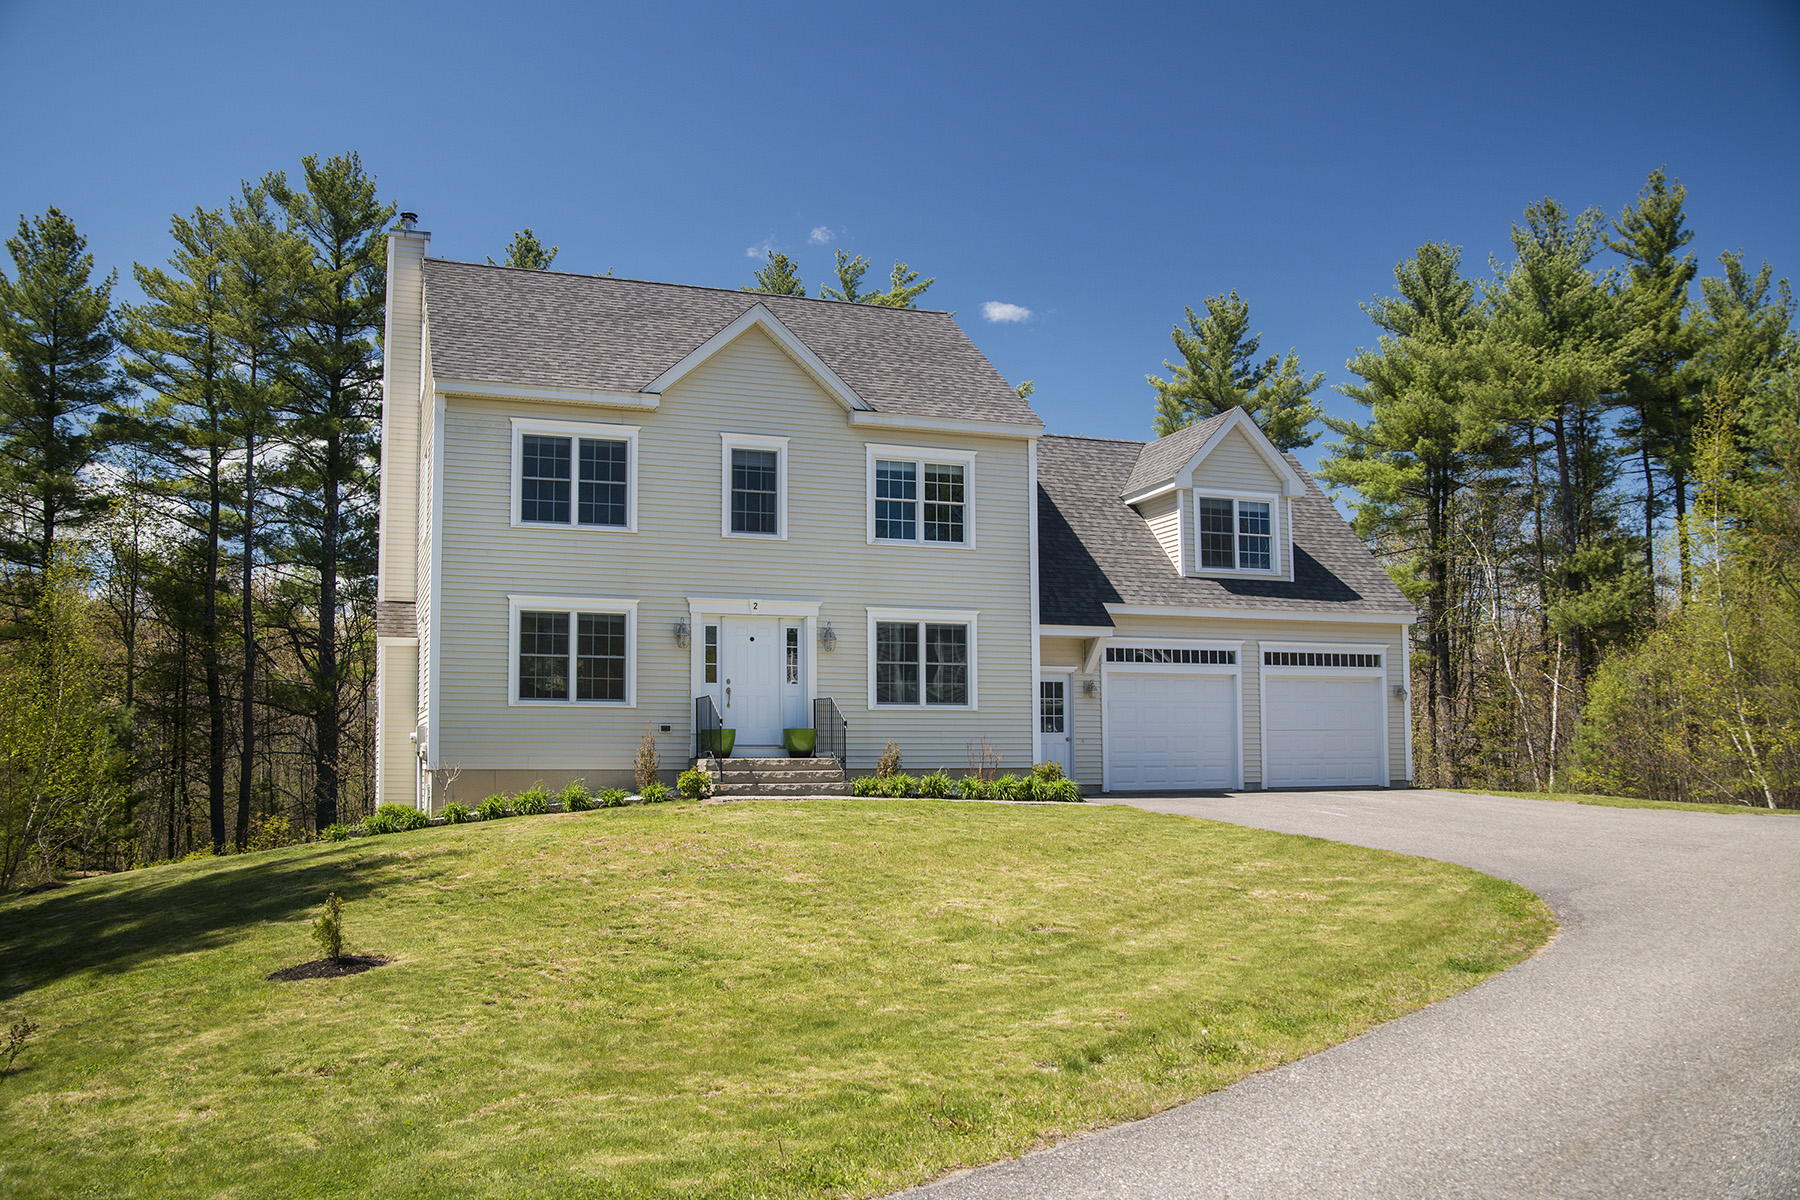 Single Family Home for Sale at 2 Moxie Way Scarborough, Maine, 04074 United States